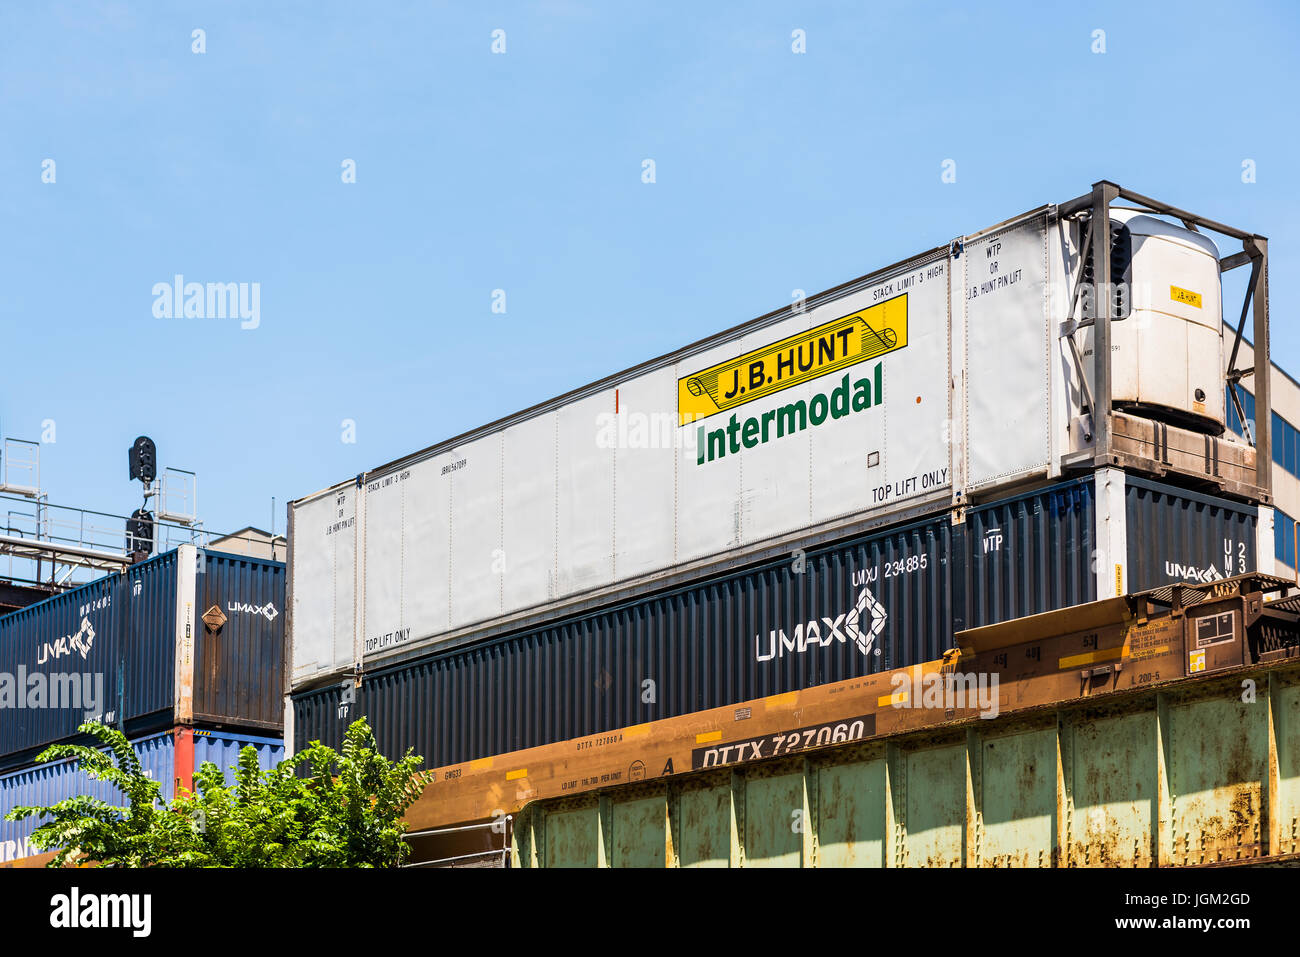 washington dc usa july 3 2017 jb hunt intermodal cargo shipping container on train